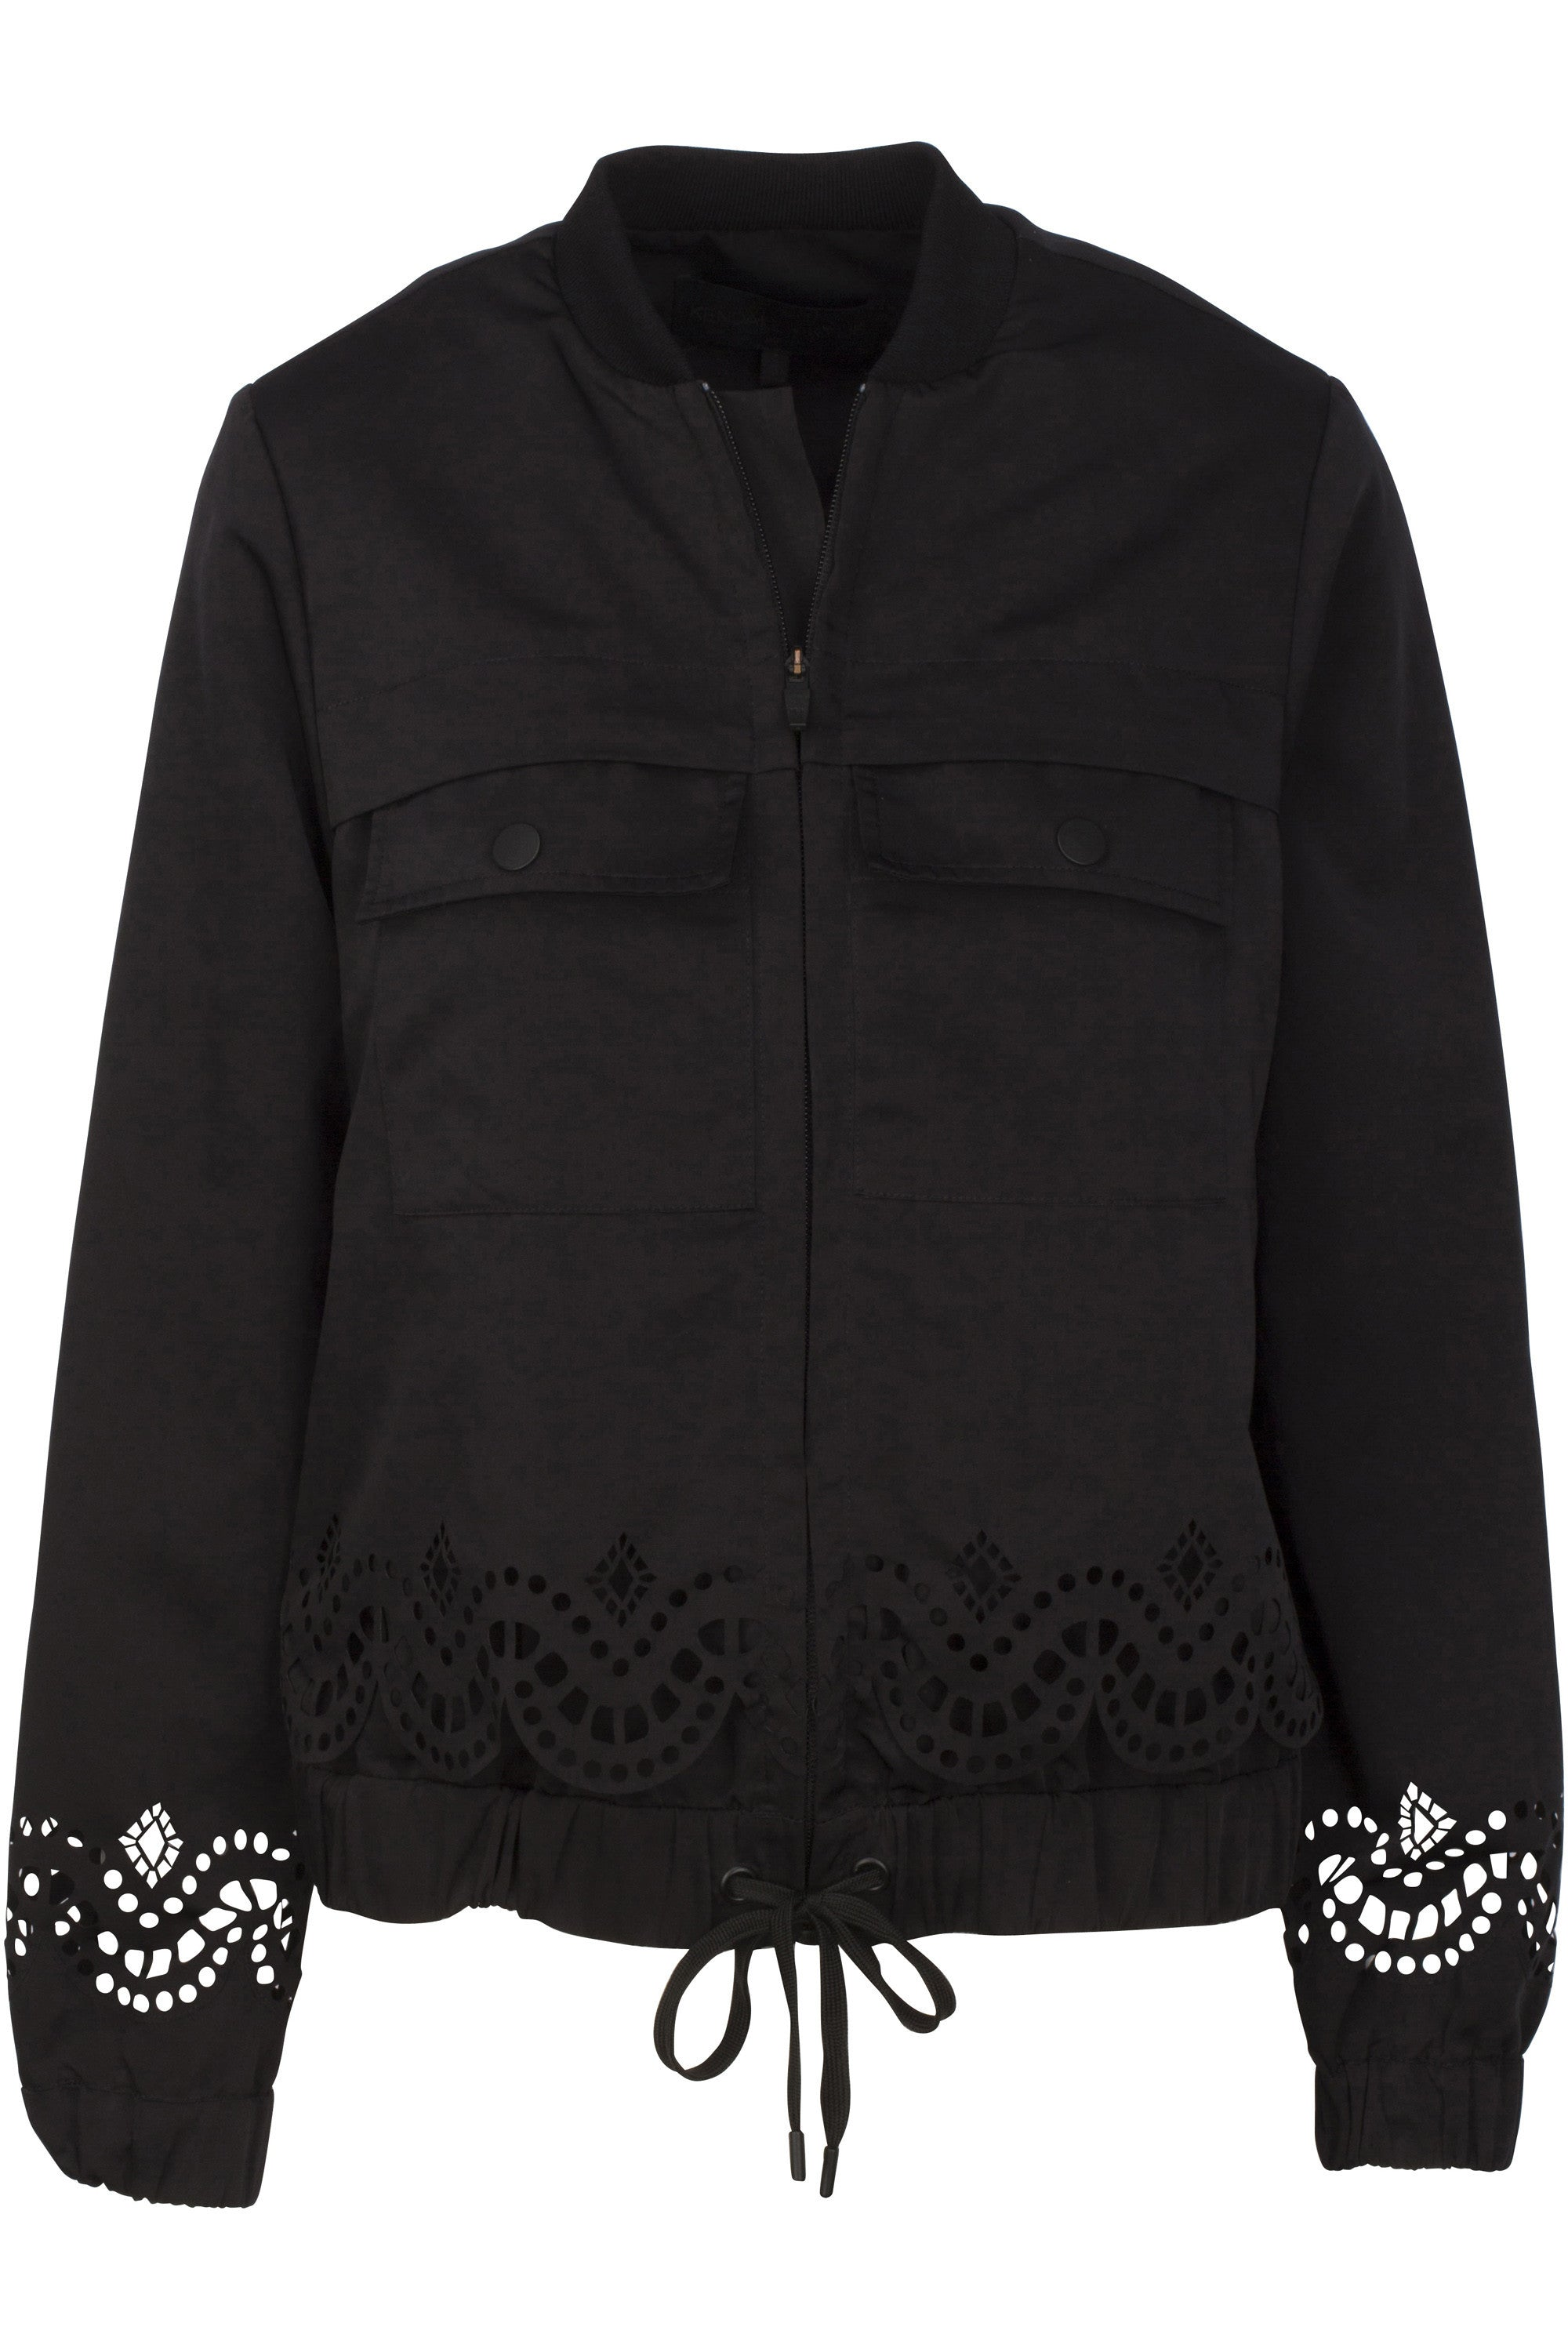 LASER CUT BOMBER JACKETS by KENDALL + KYLIE